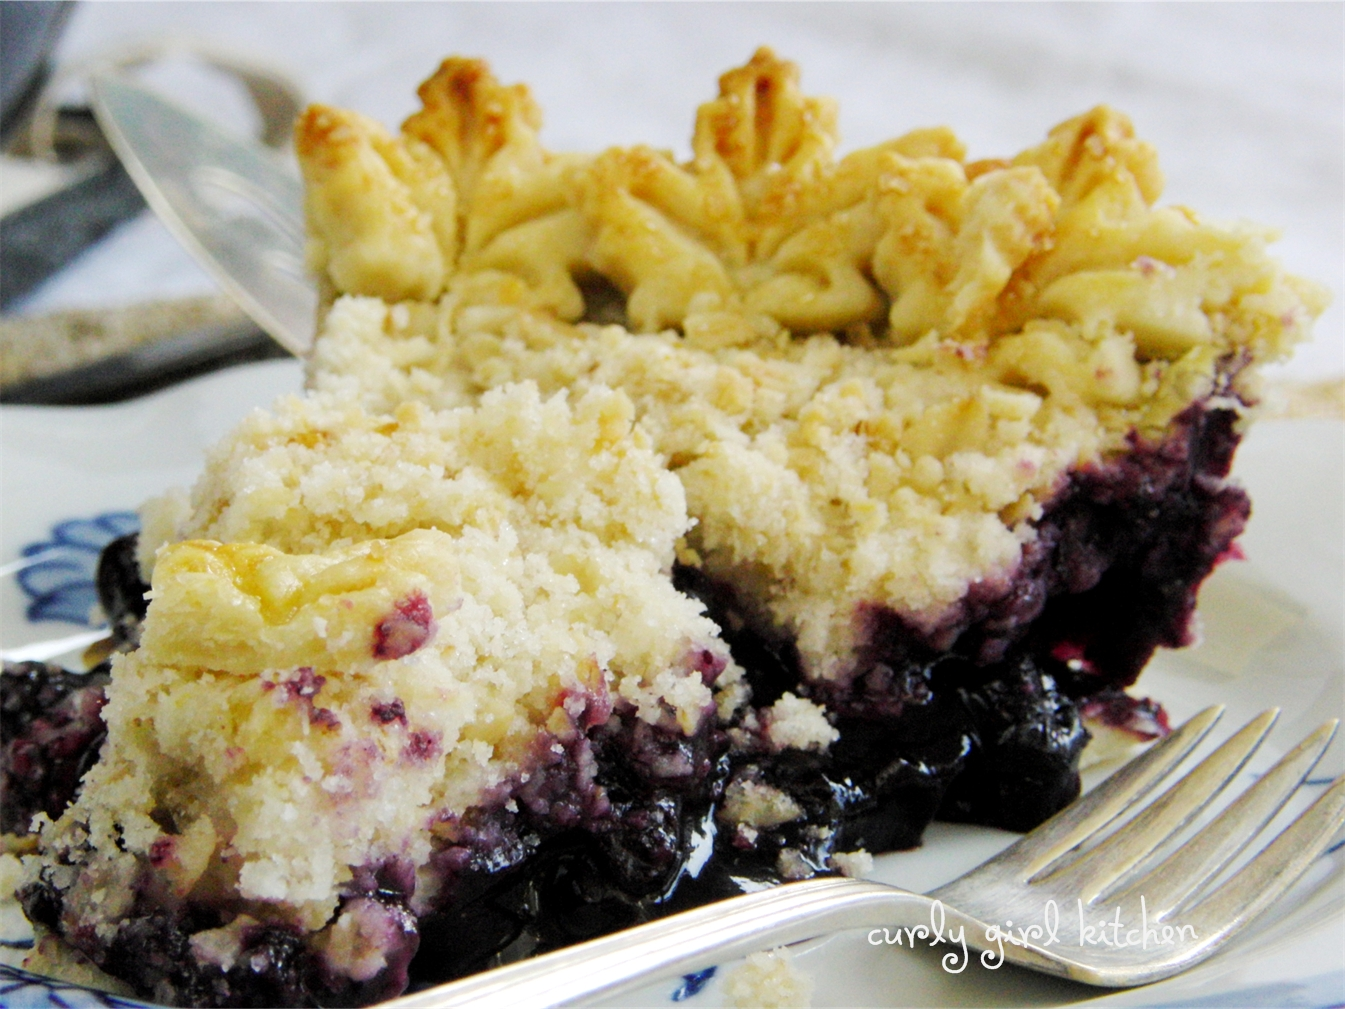 Curly Girl Kitchen: Blueberry Crumb Pie for a Wintry Weekend